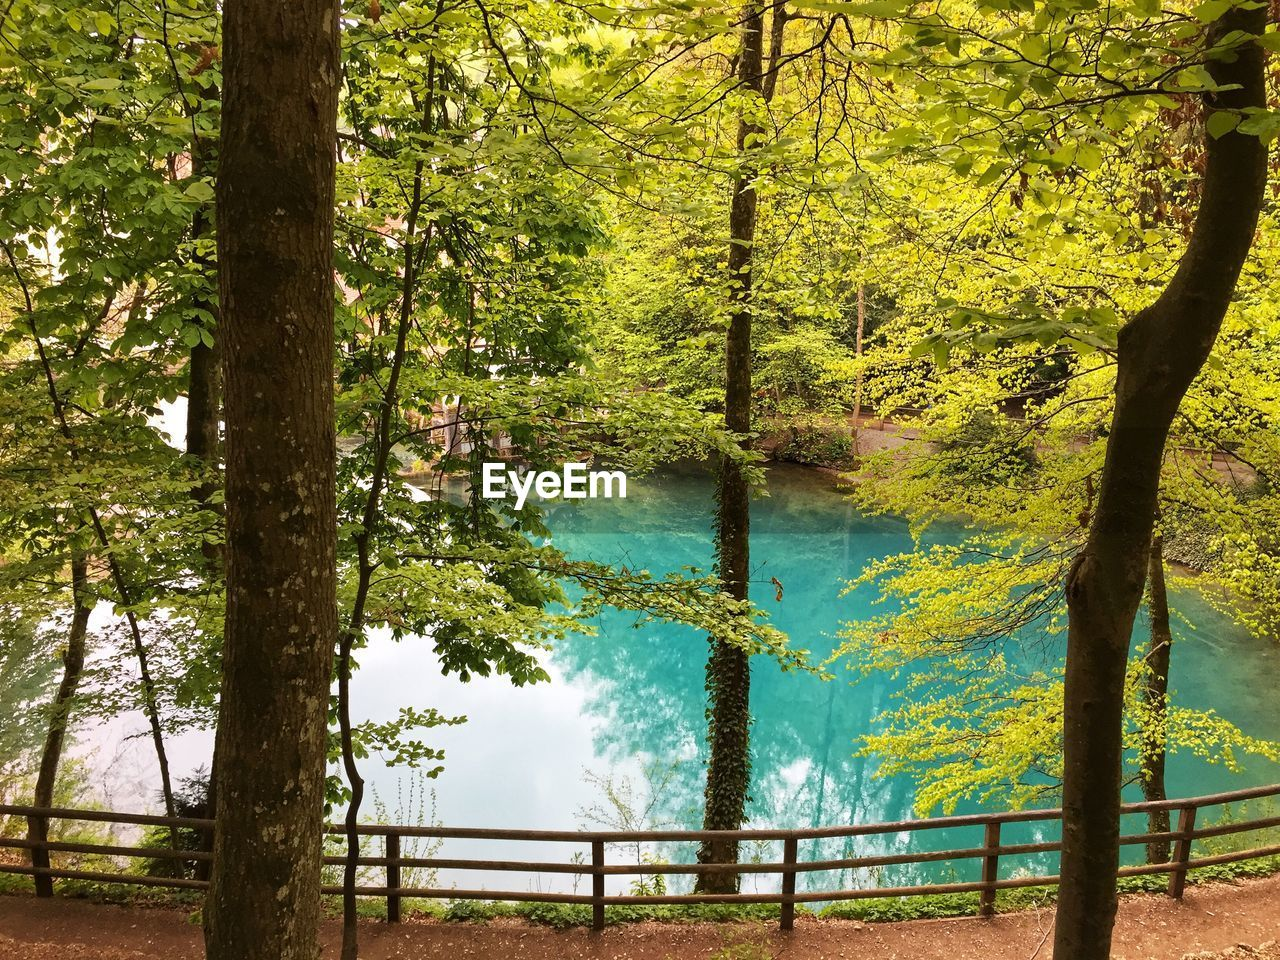 tree, plant, tree trunk, trunk, water, beauty in nature, tranquility, growth, tranquil scene, nature, forest, land, lake, day, no people, scenics - nature, non-urban scene, green color, outdoors